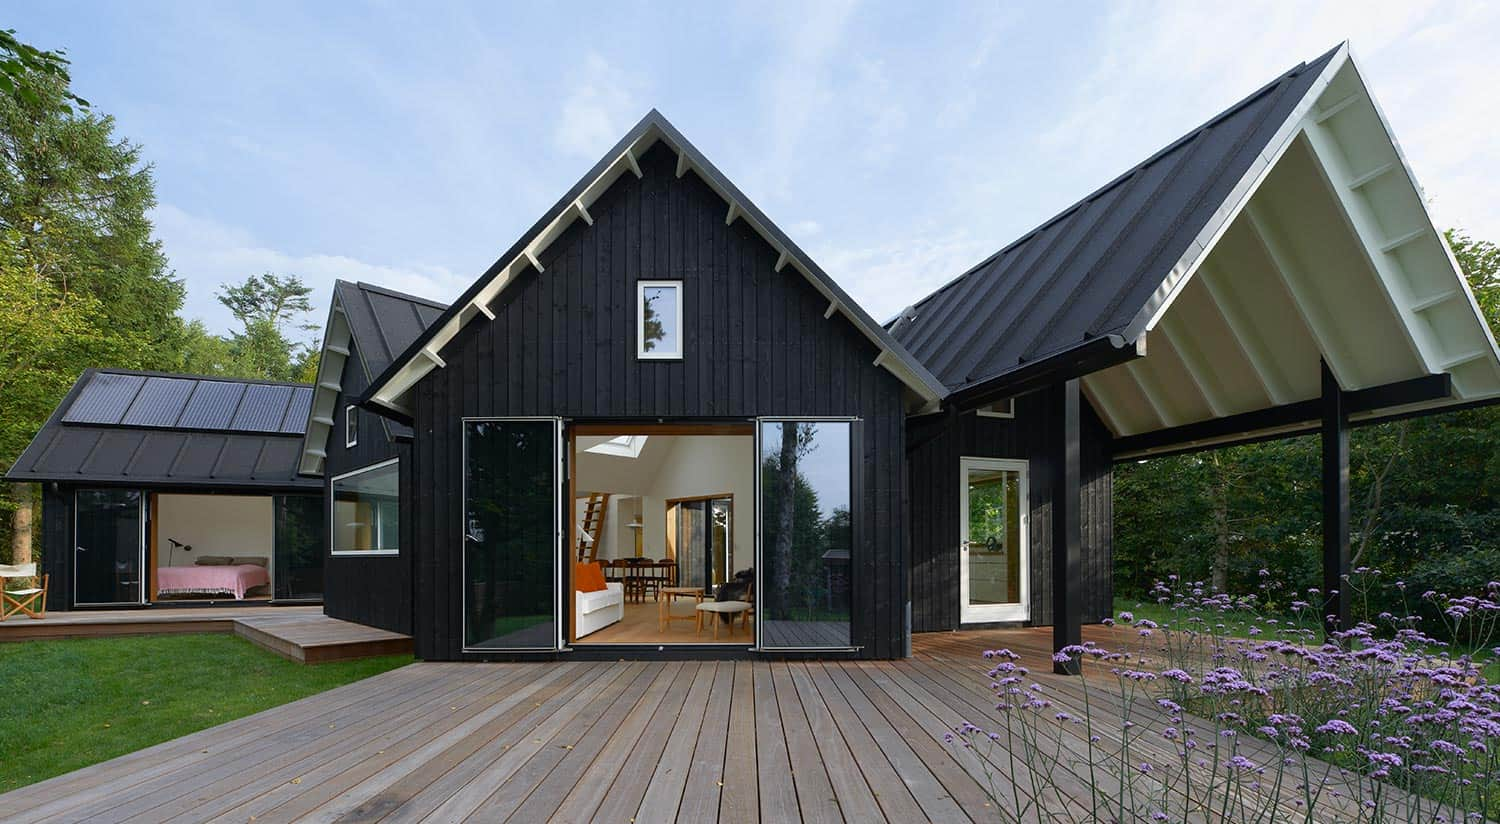 Contemporary yet Traditional Danish Summer Cabin